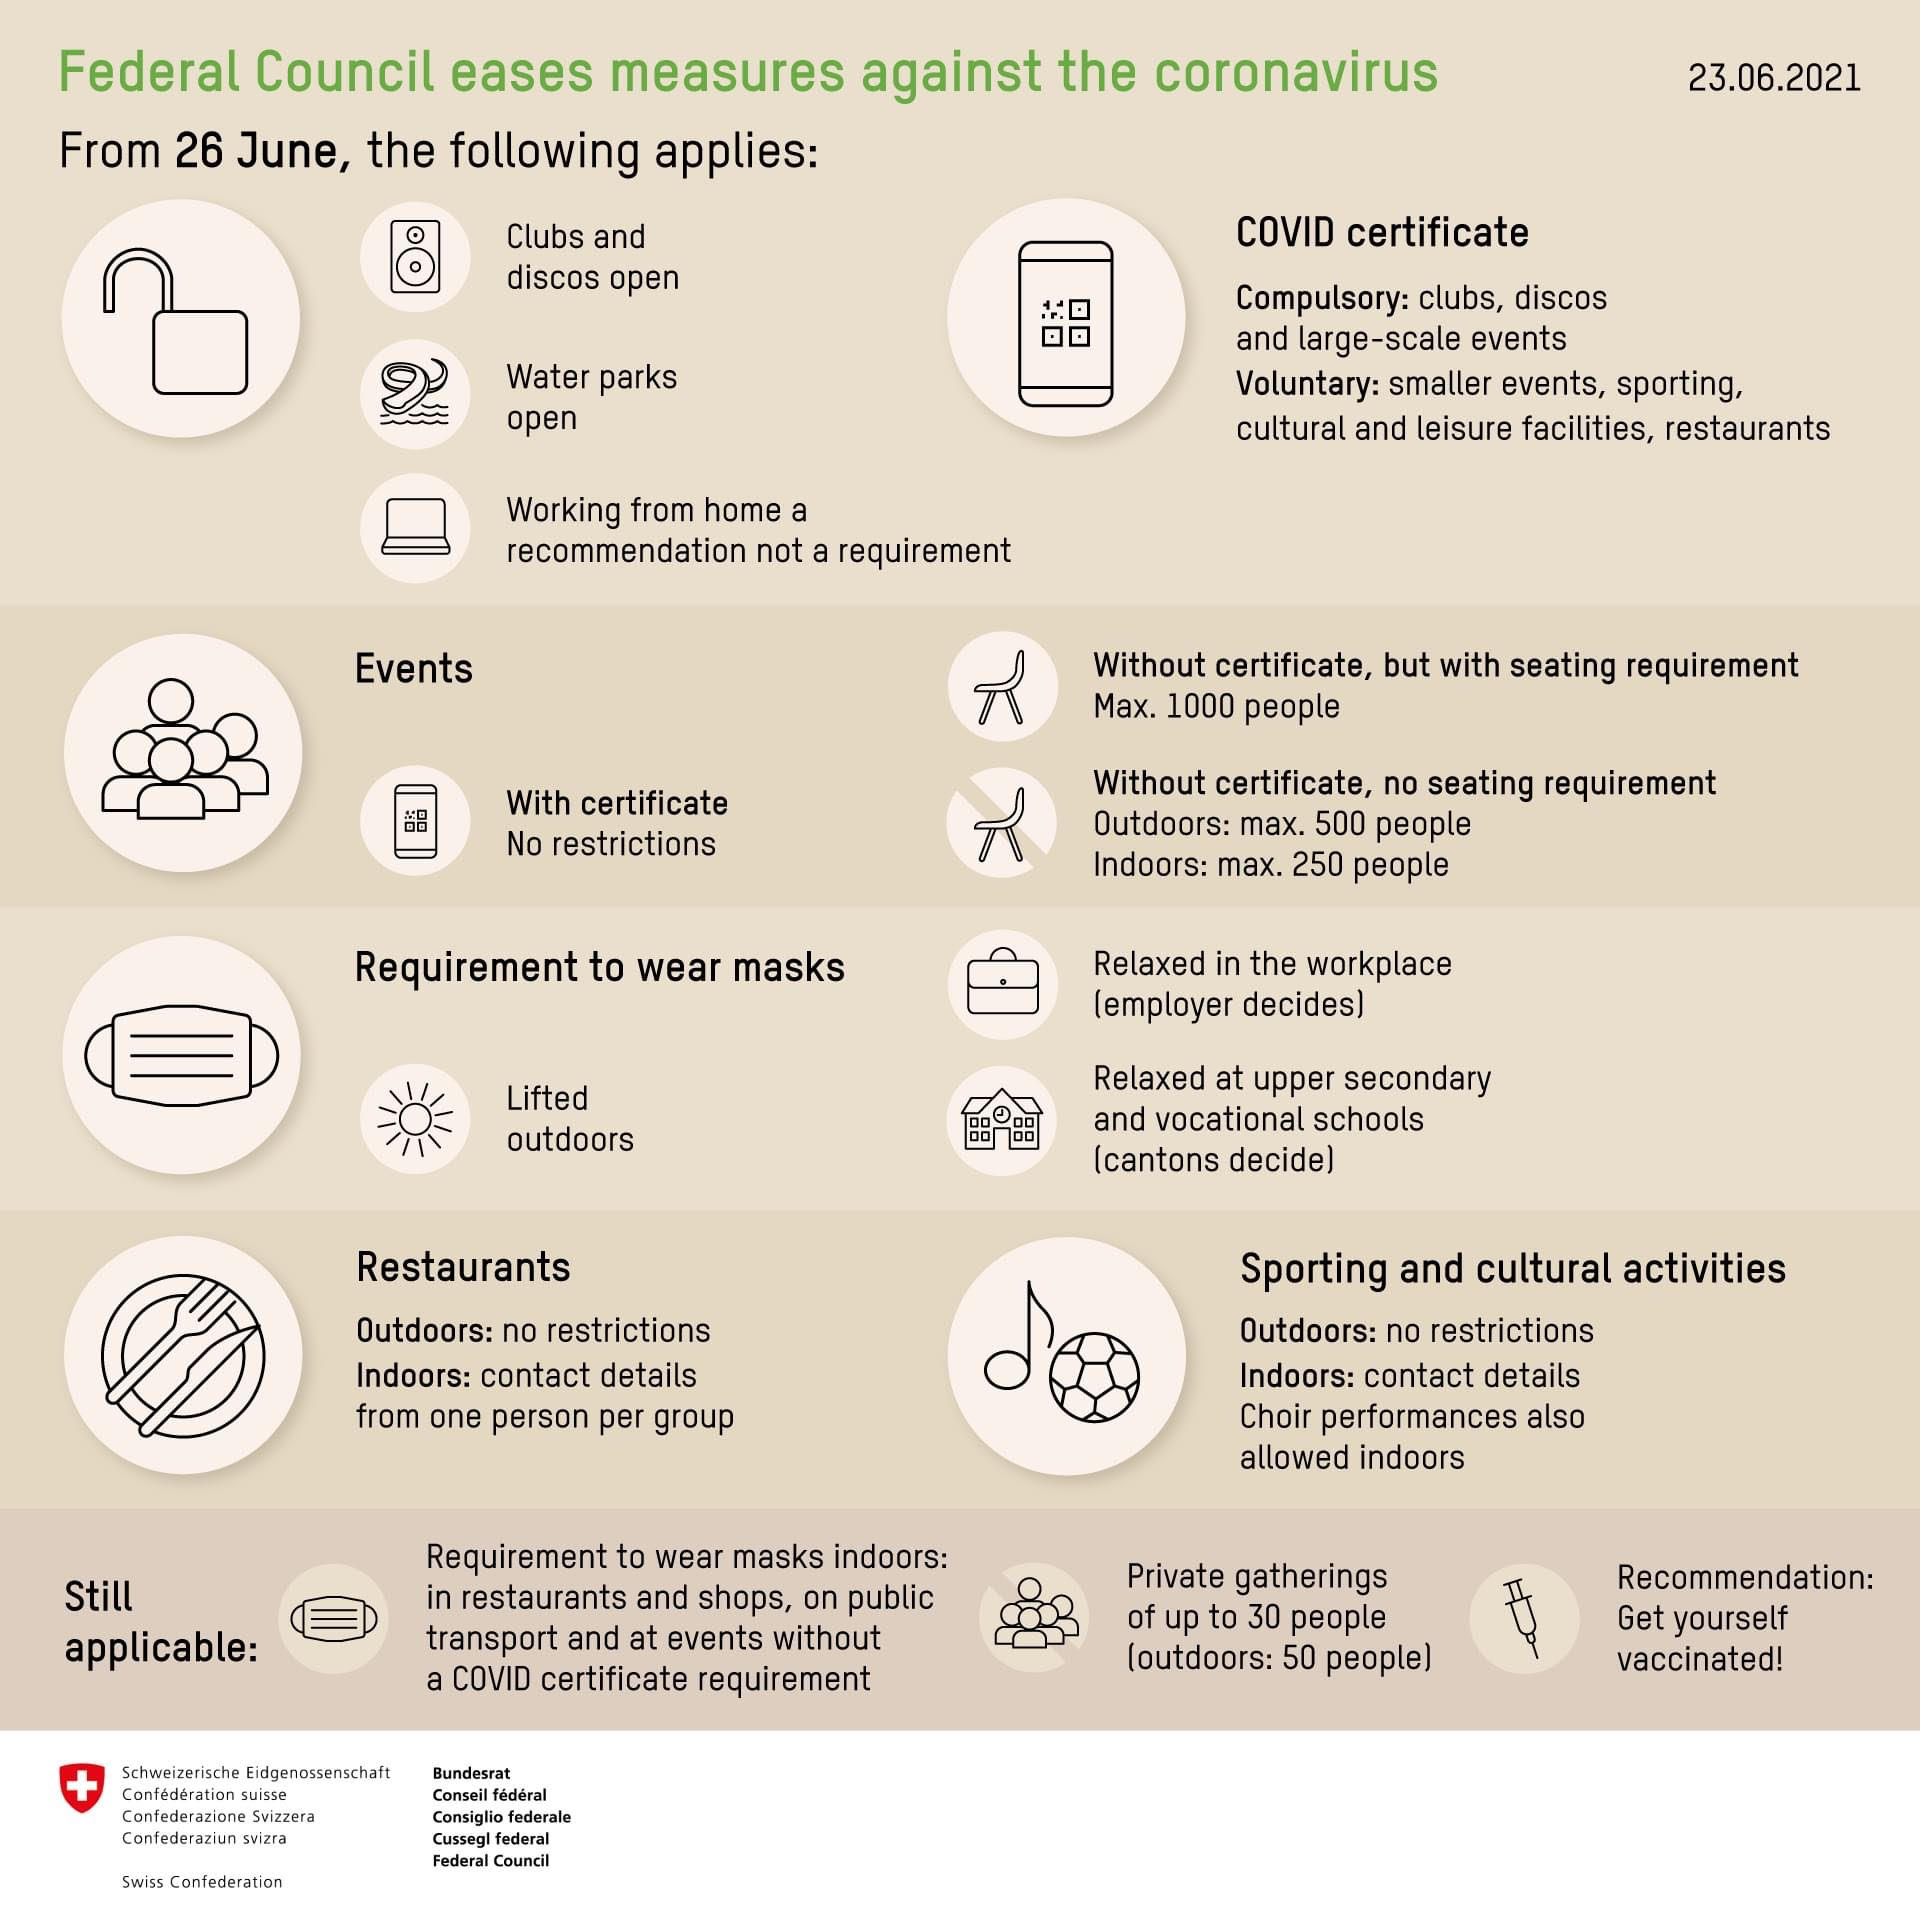 Switzerland's Federal Council eases measures against the coronavirus